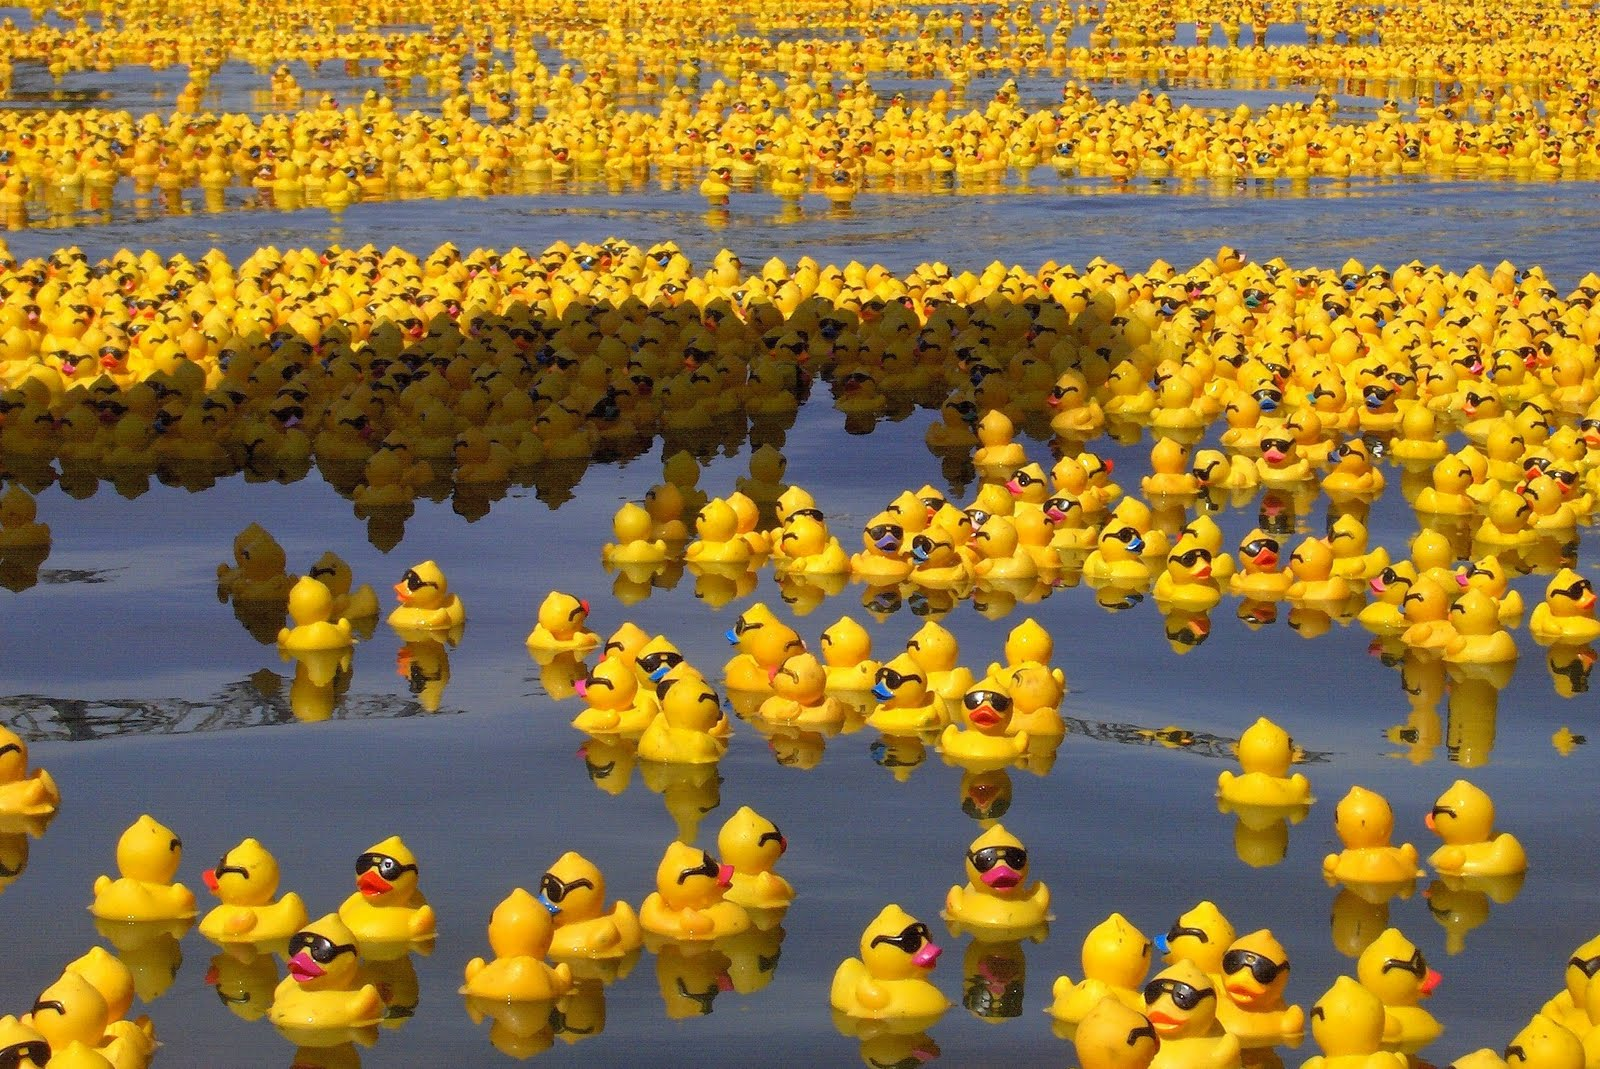 Every Day Is Special January 13 2013 Rubber Duckie Day